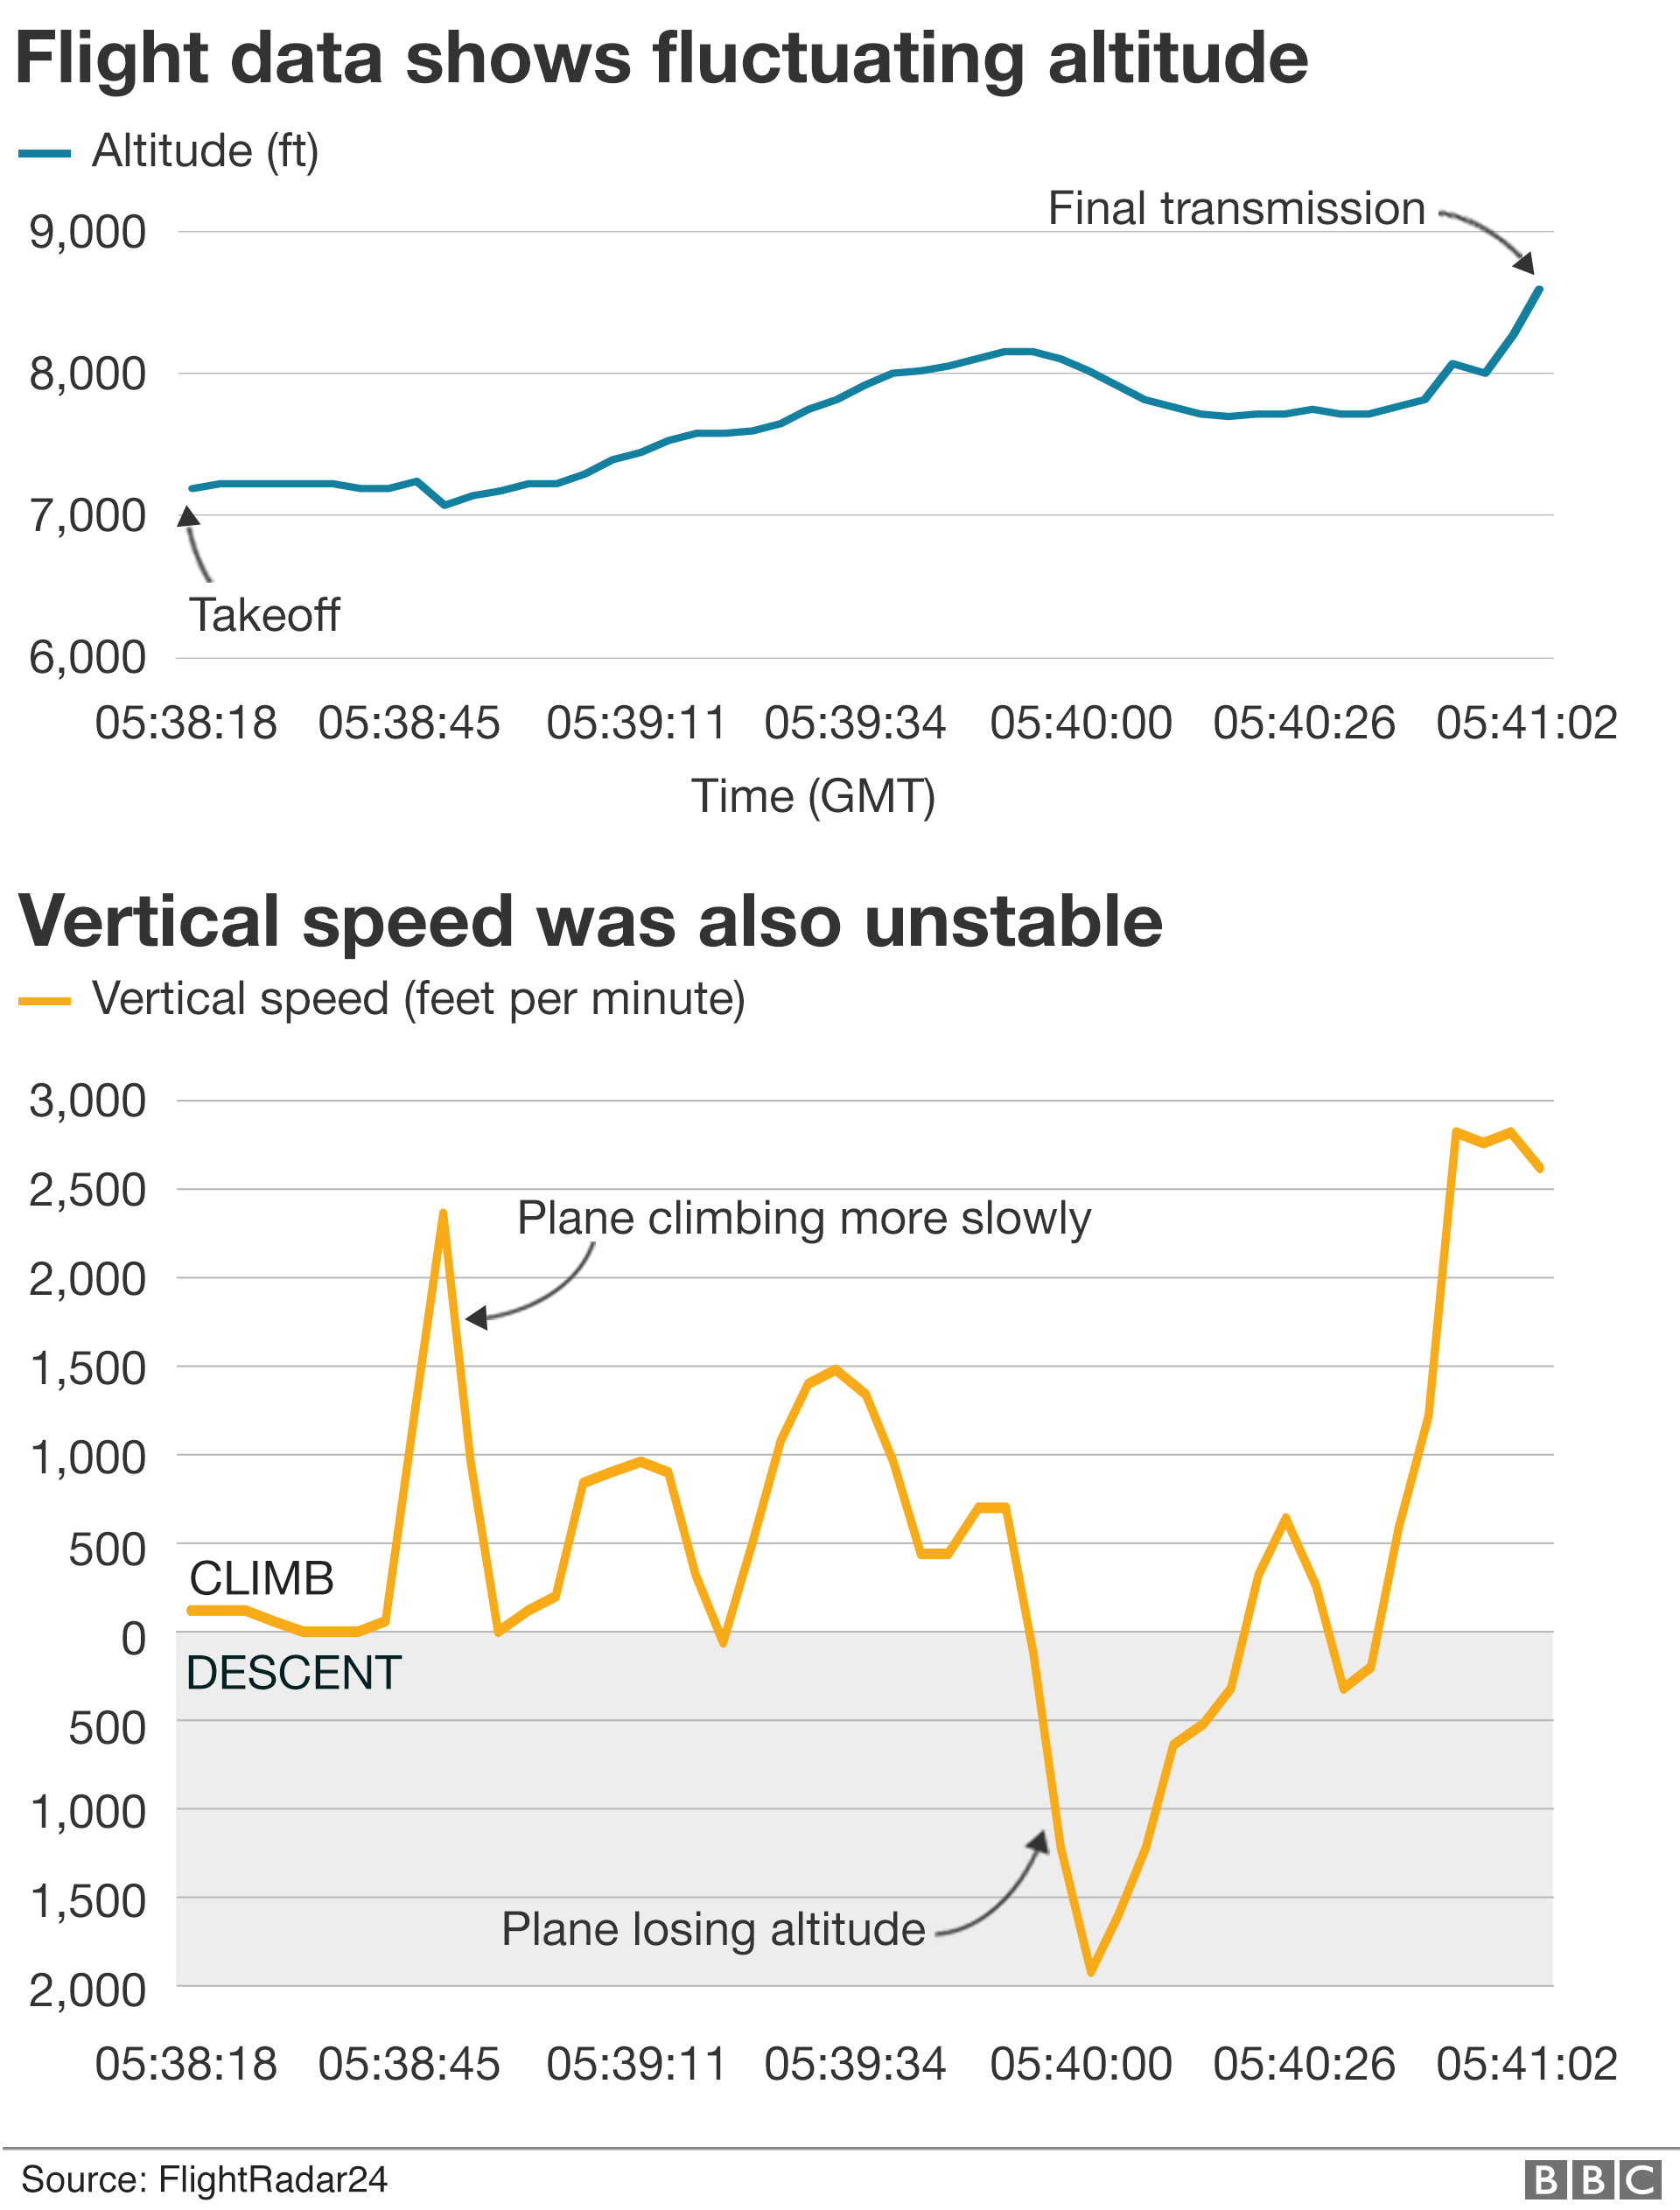 Graphic showing altitude and vertical speed readings from Flight 302